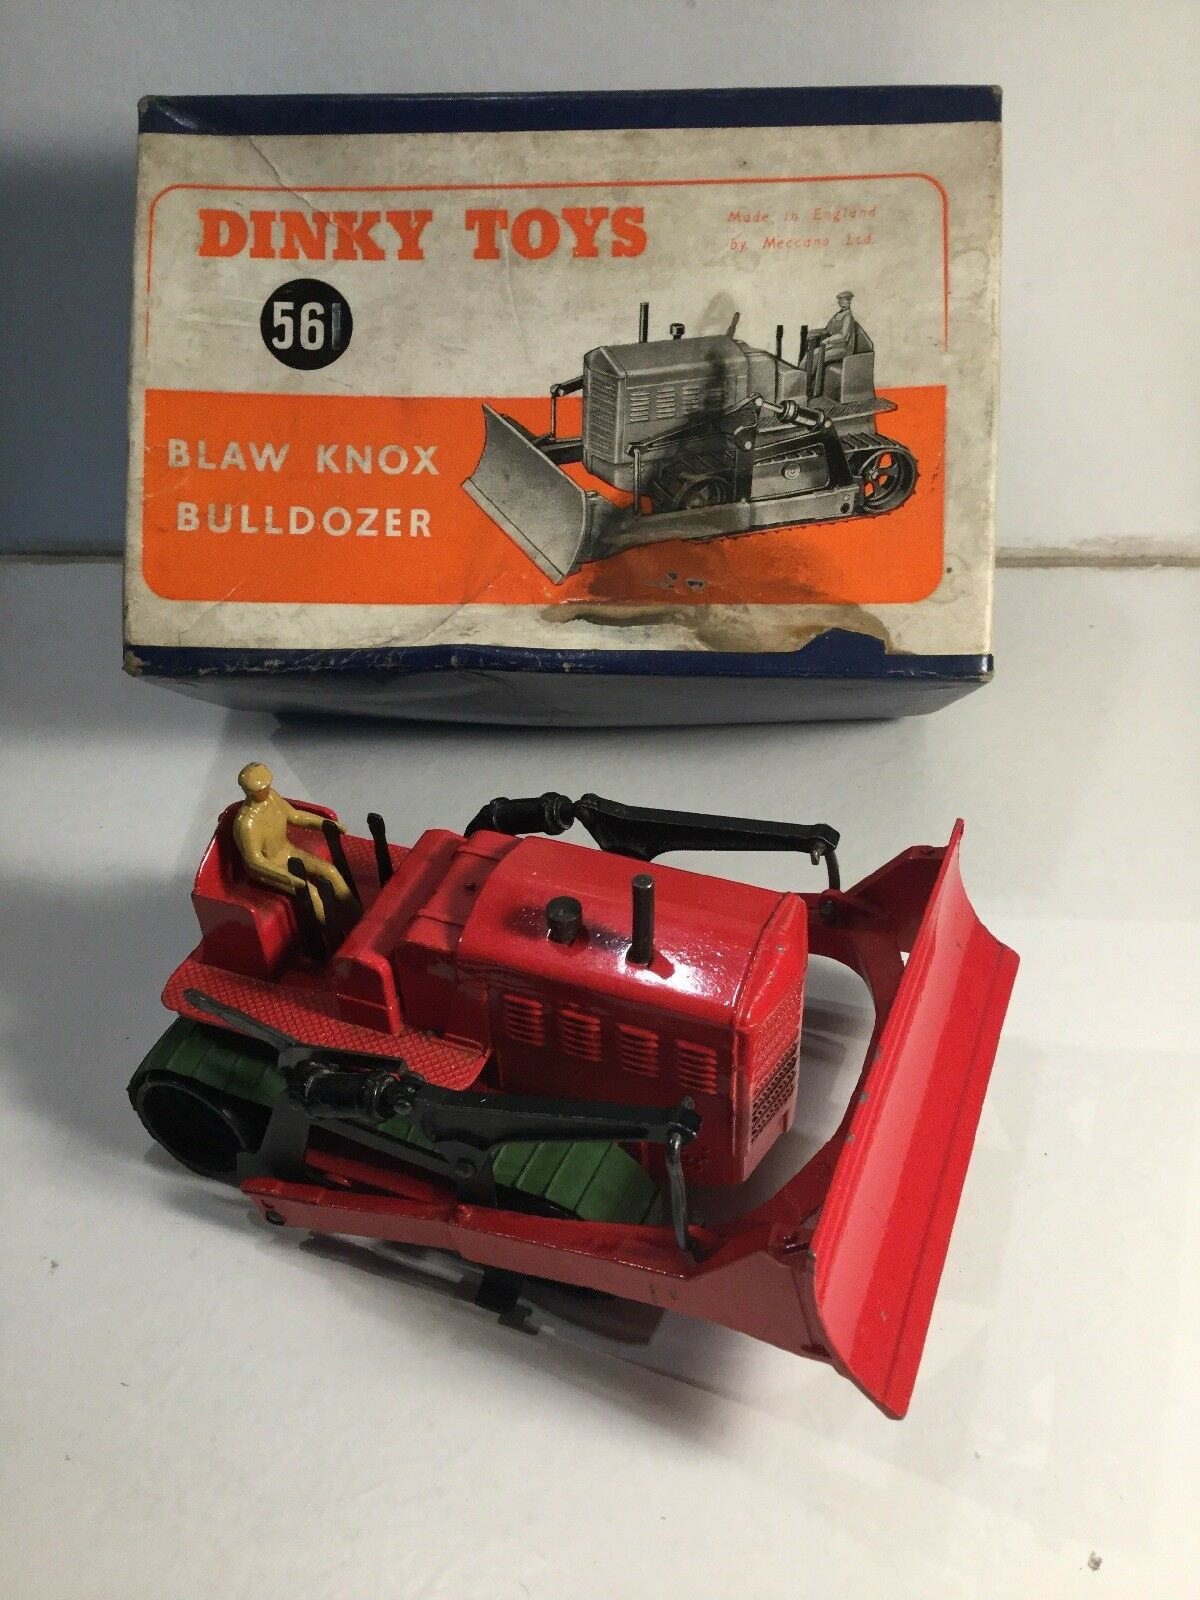 Dinky 561 Blaw Knox Bulldozer Within Its Original Box